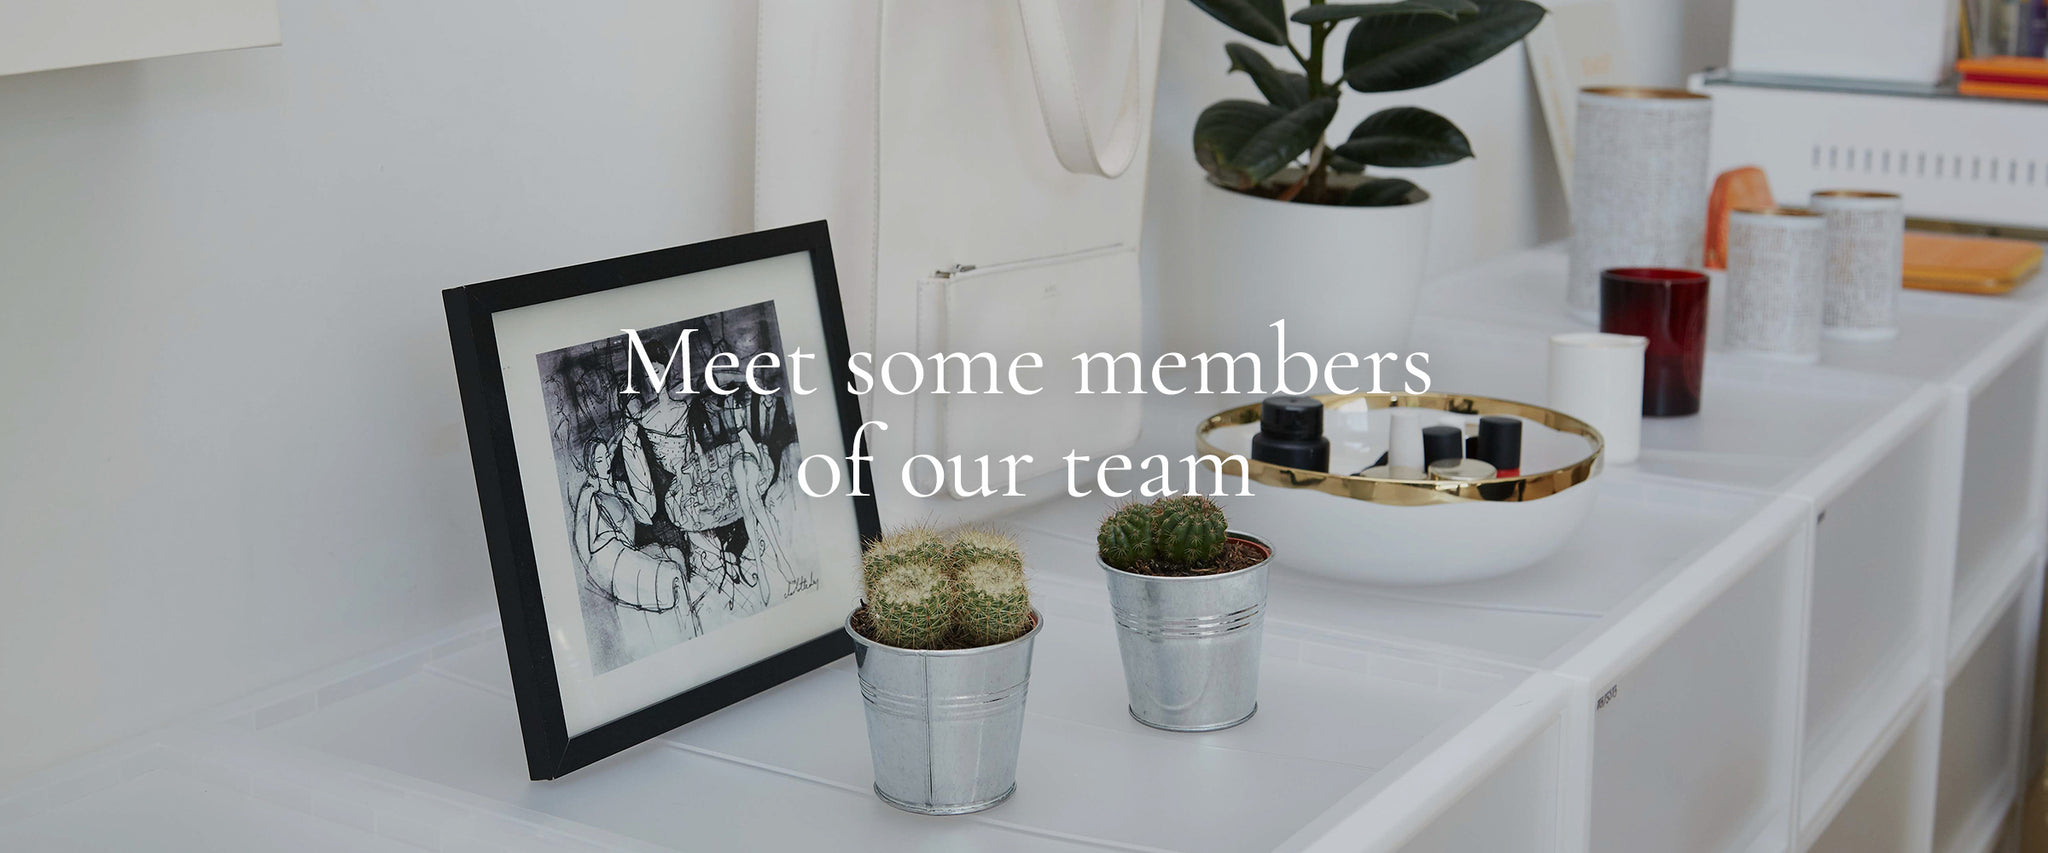 Meet some members of our team